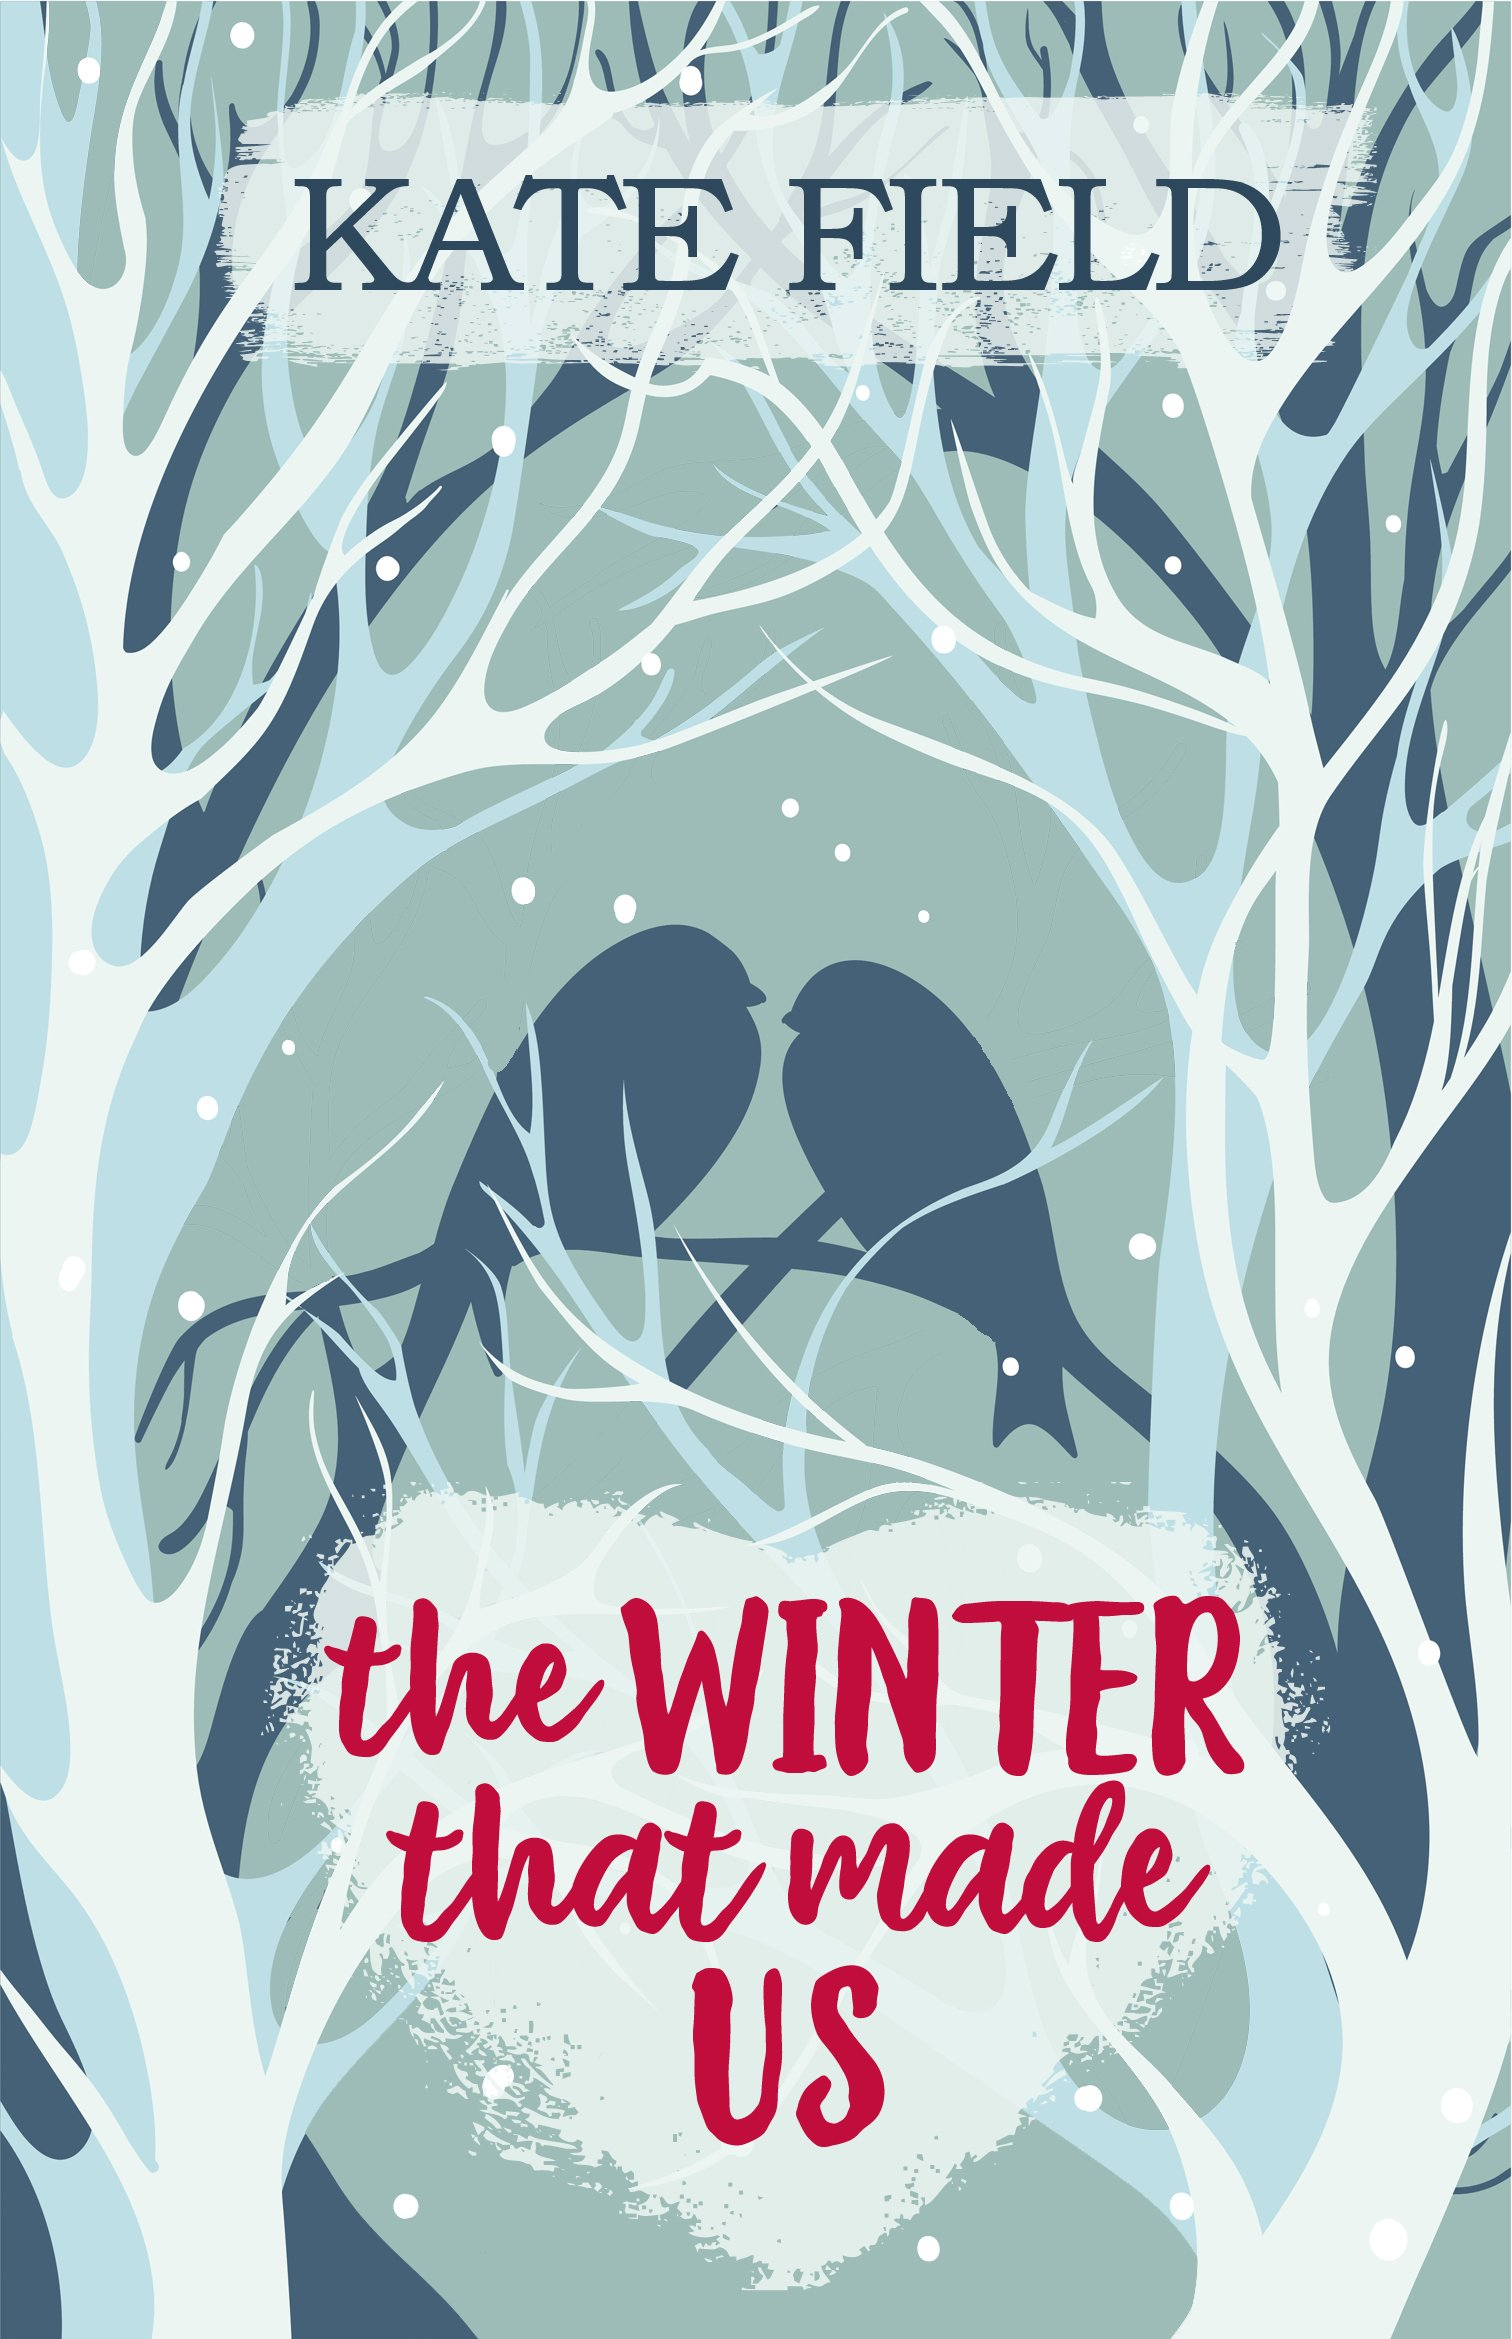 99f8ea02620 The Winter That Made Us: Amazon.co.uk: Kate Field: 9781786156181: Books